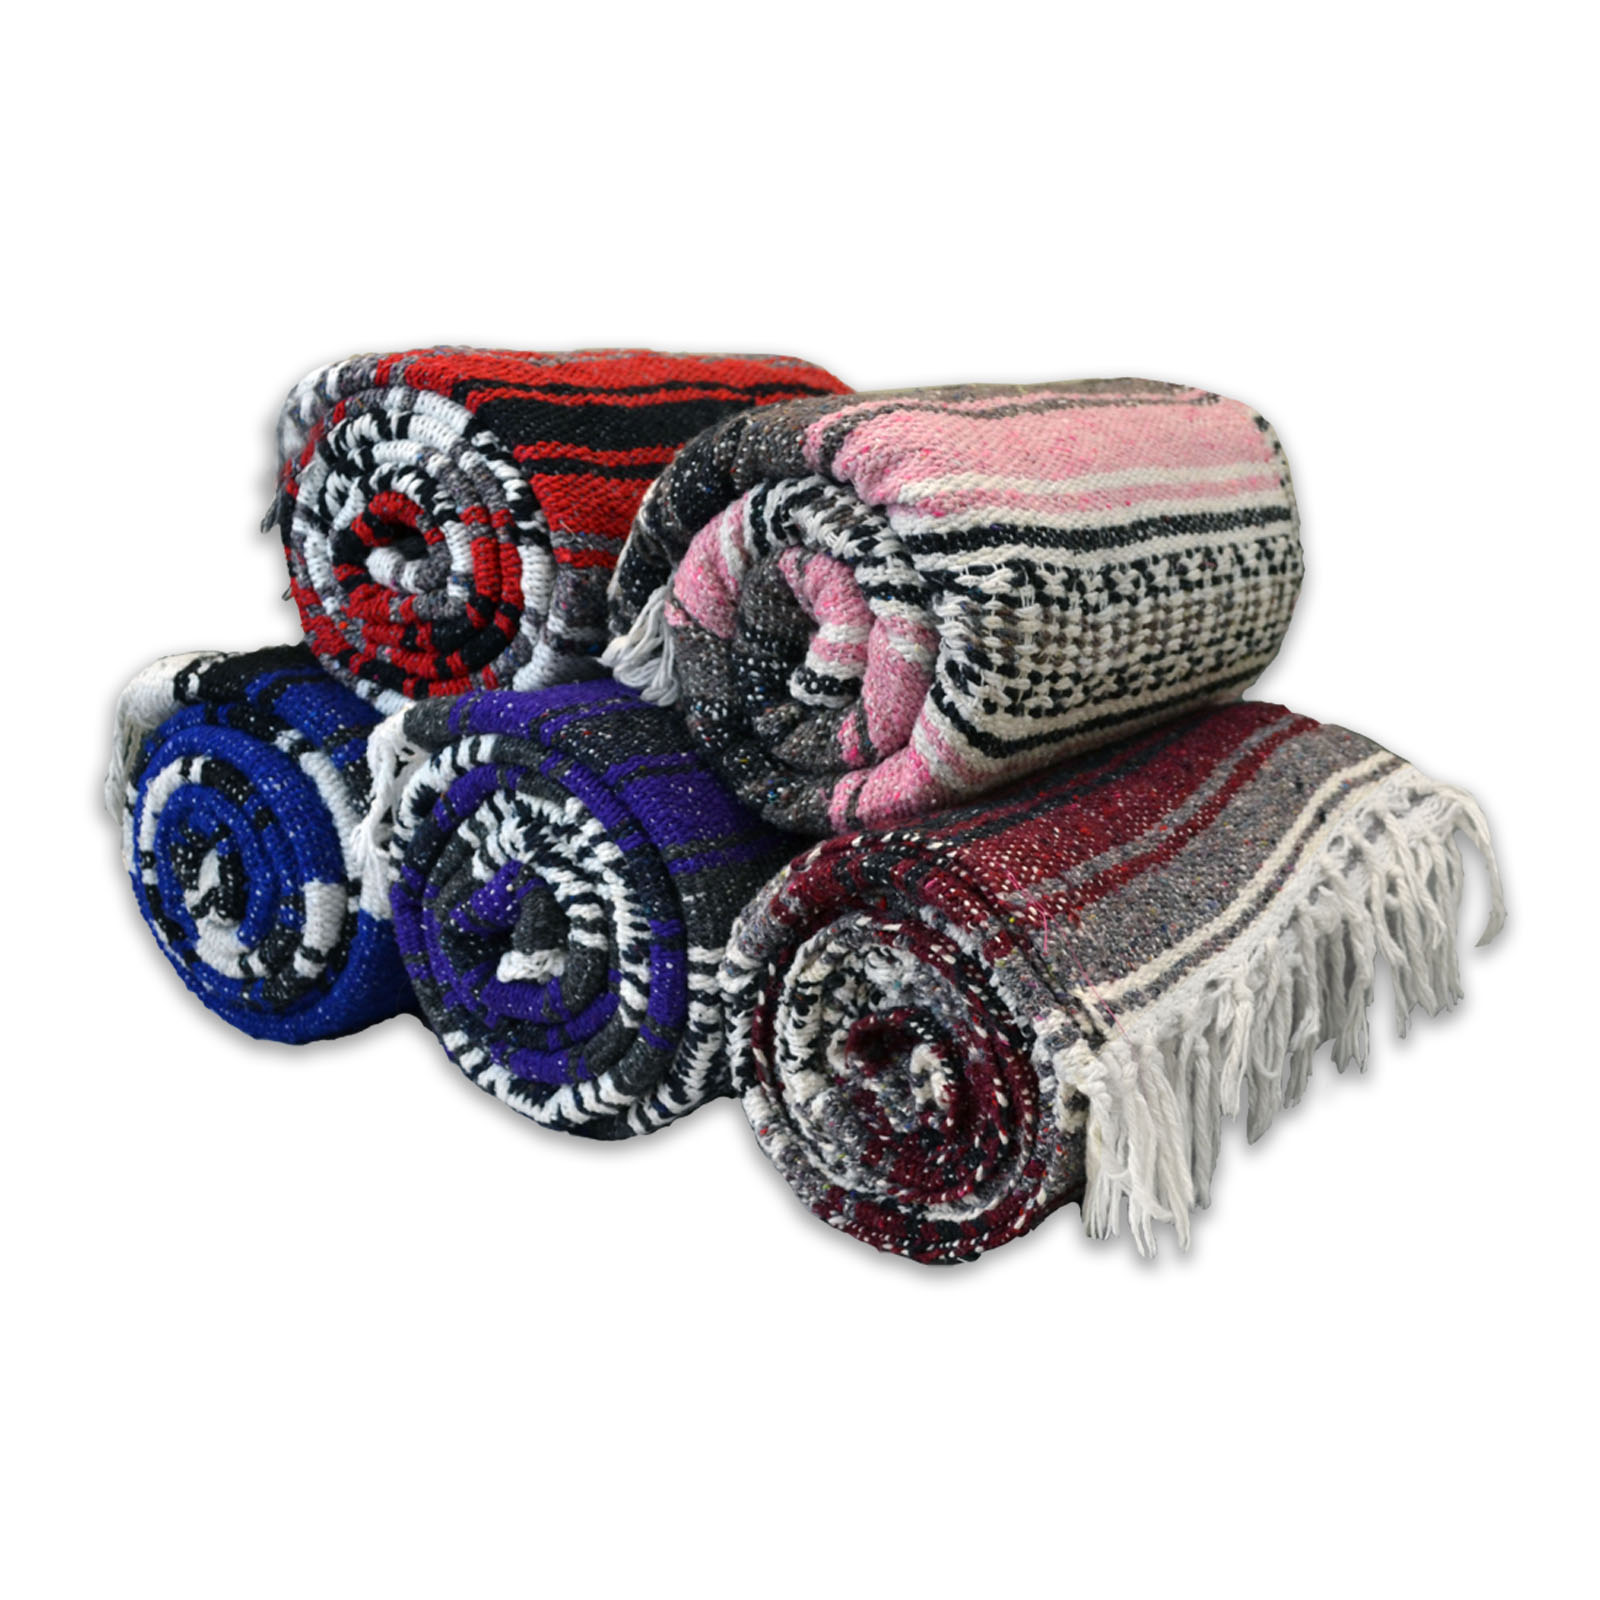 Traditional Mexican Yoga Blanket Yoga Direct